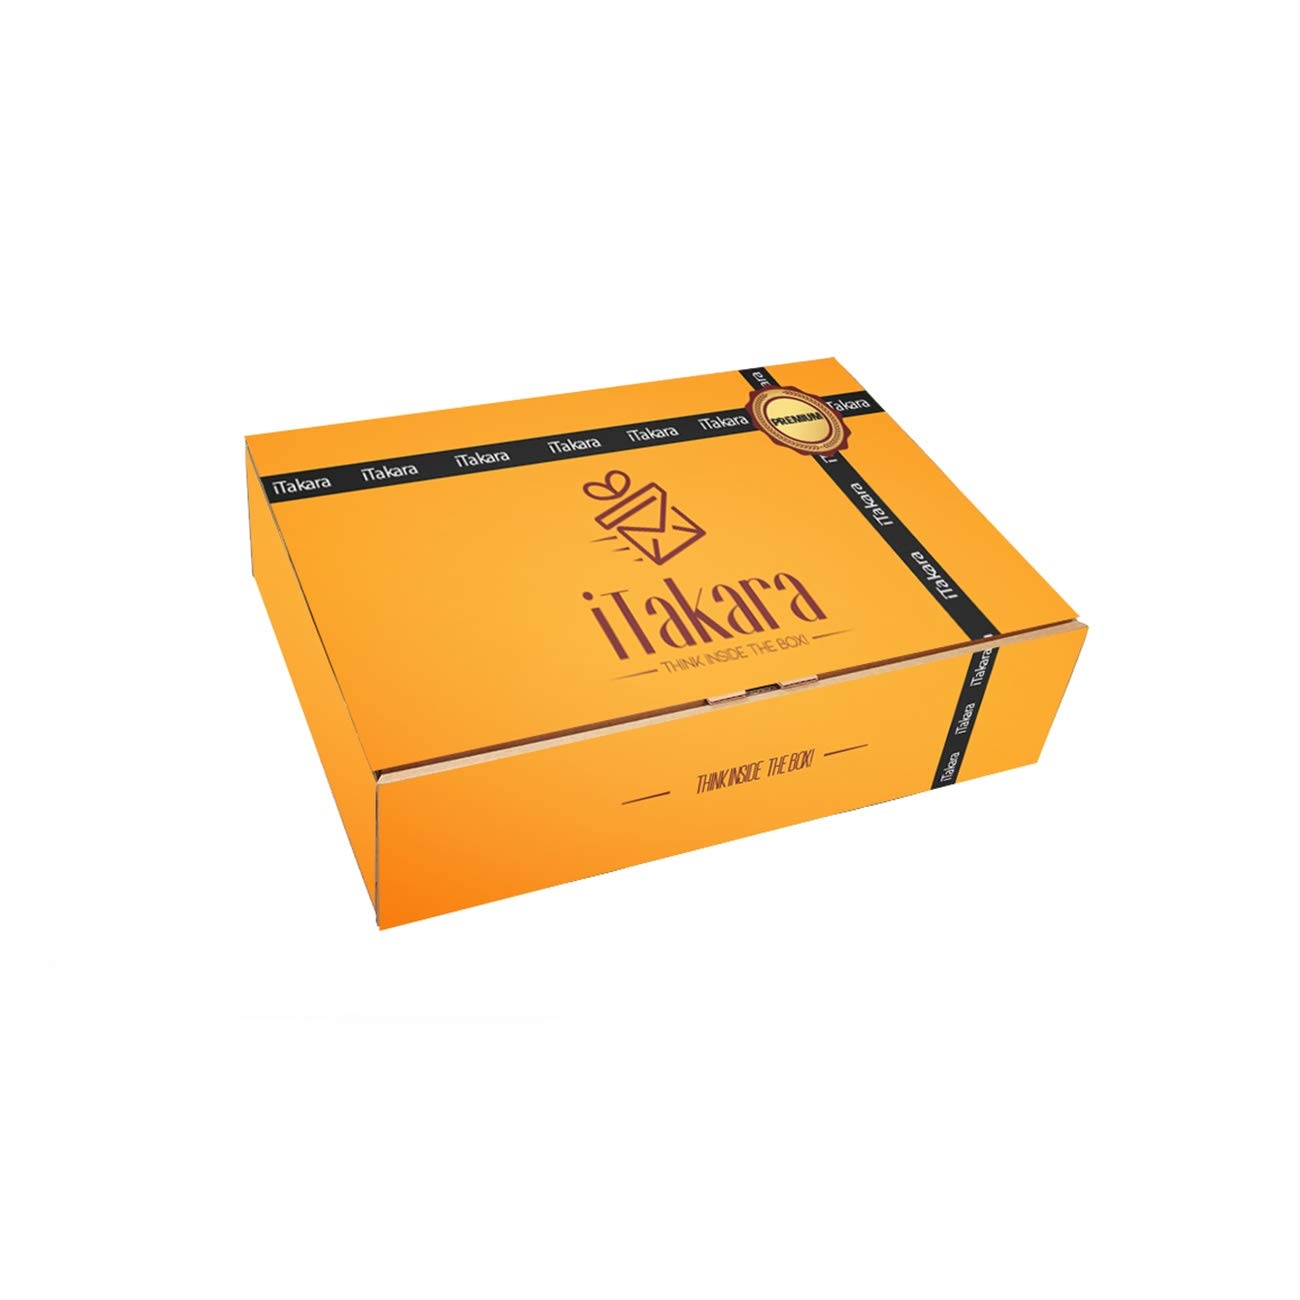 iTakara Nippon Kodo Morning Star Incense Ultimate Collection | 18 fragrances X 50 | Floral and Aromatic Wood Scents for Relaxation, Meditation, Prayer, Reading, Yoga | Clean Burning, Pure Scent by iTakara (Image #5)